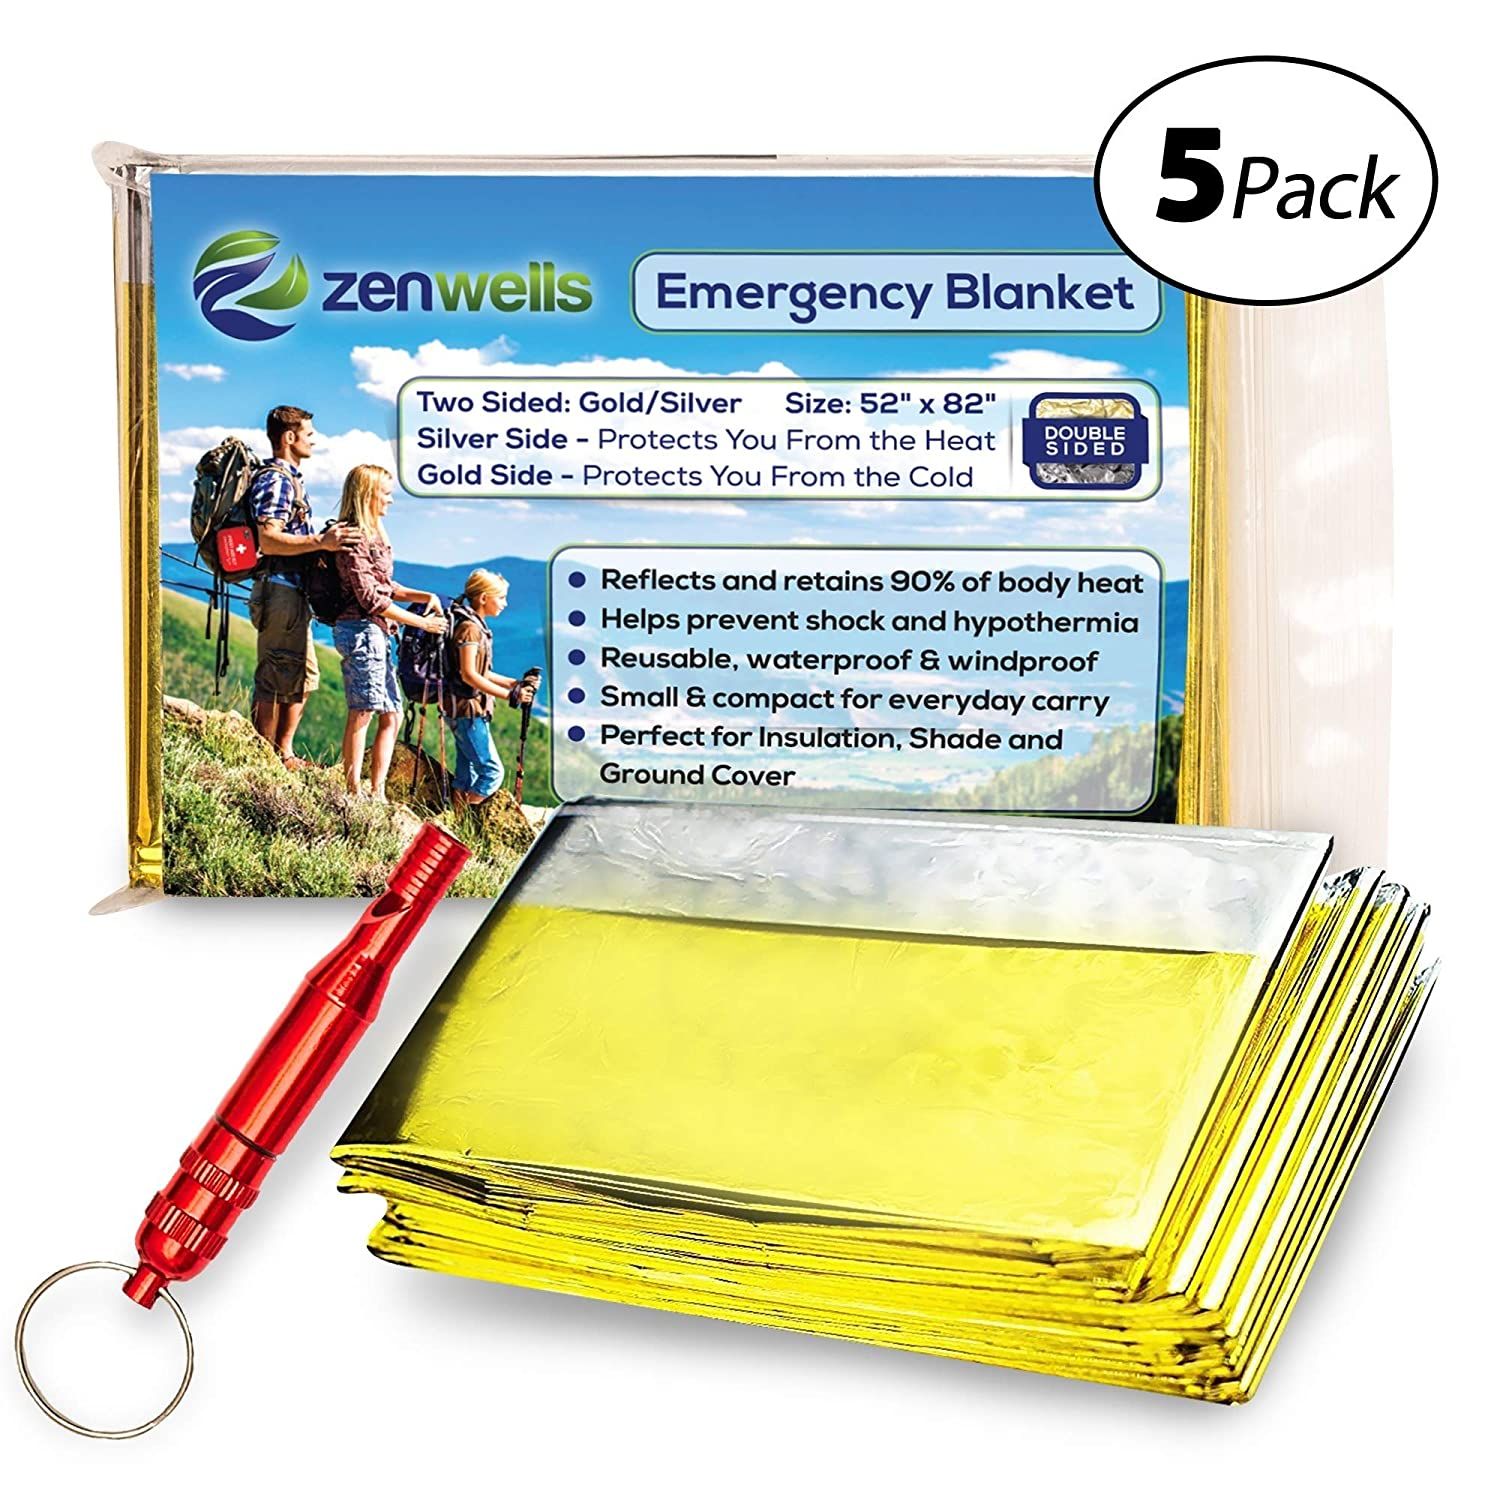 Zenwells Gold Mylar Solar Blankets 5-Pack; Thermal Blanket for Emergency Survival Kit Hiking Backpack Camping Outdoor Survivalist Car Emergencies Travel First Aid Kits Disaster Preparedness Equipment